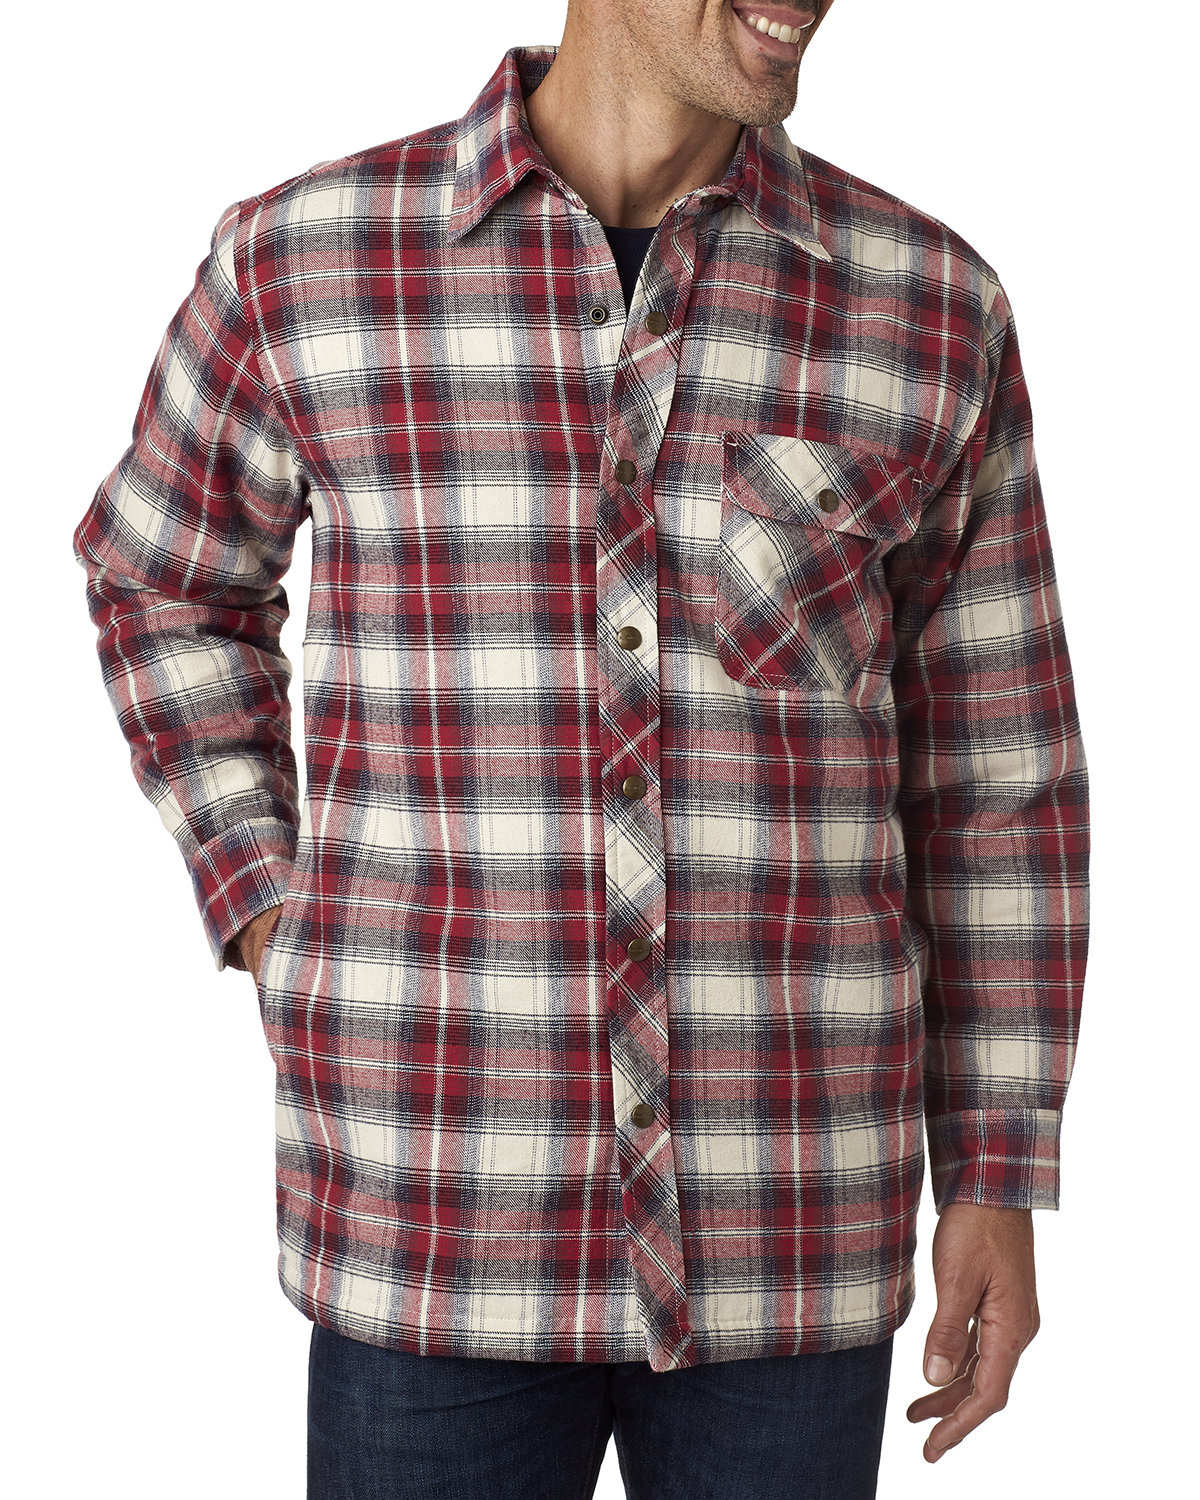 Backpacker Men's Flannel Shirt Jacket with Quilt Lining INDEPENDENT